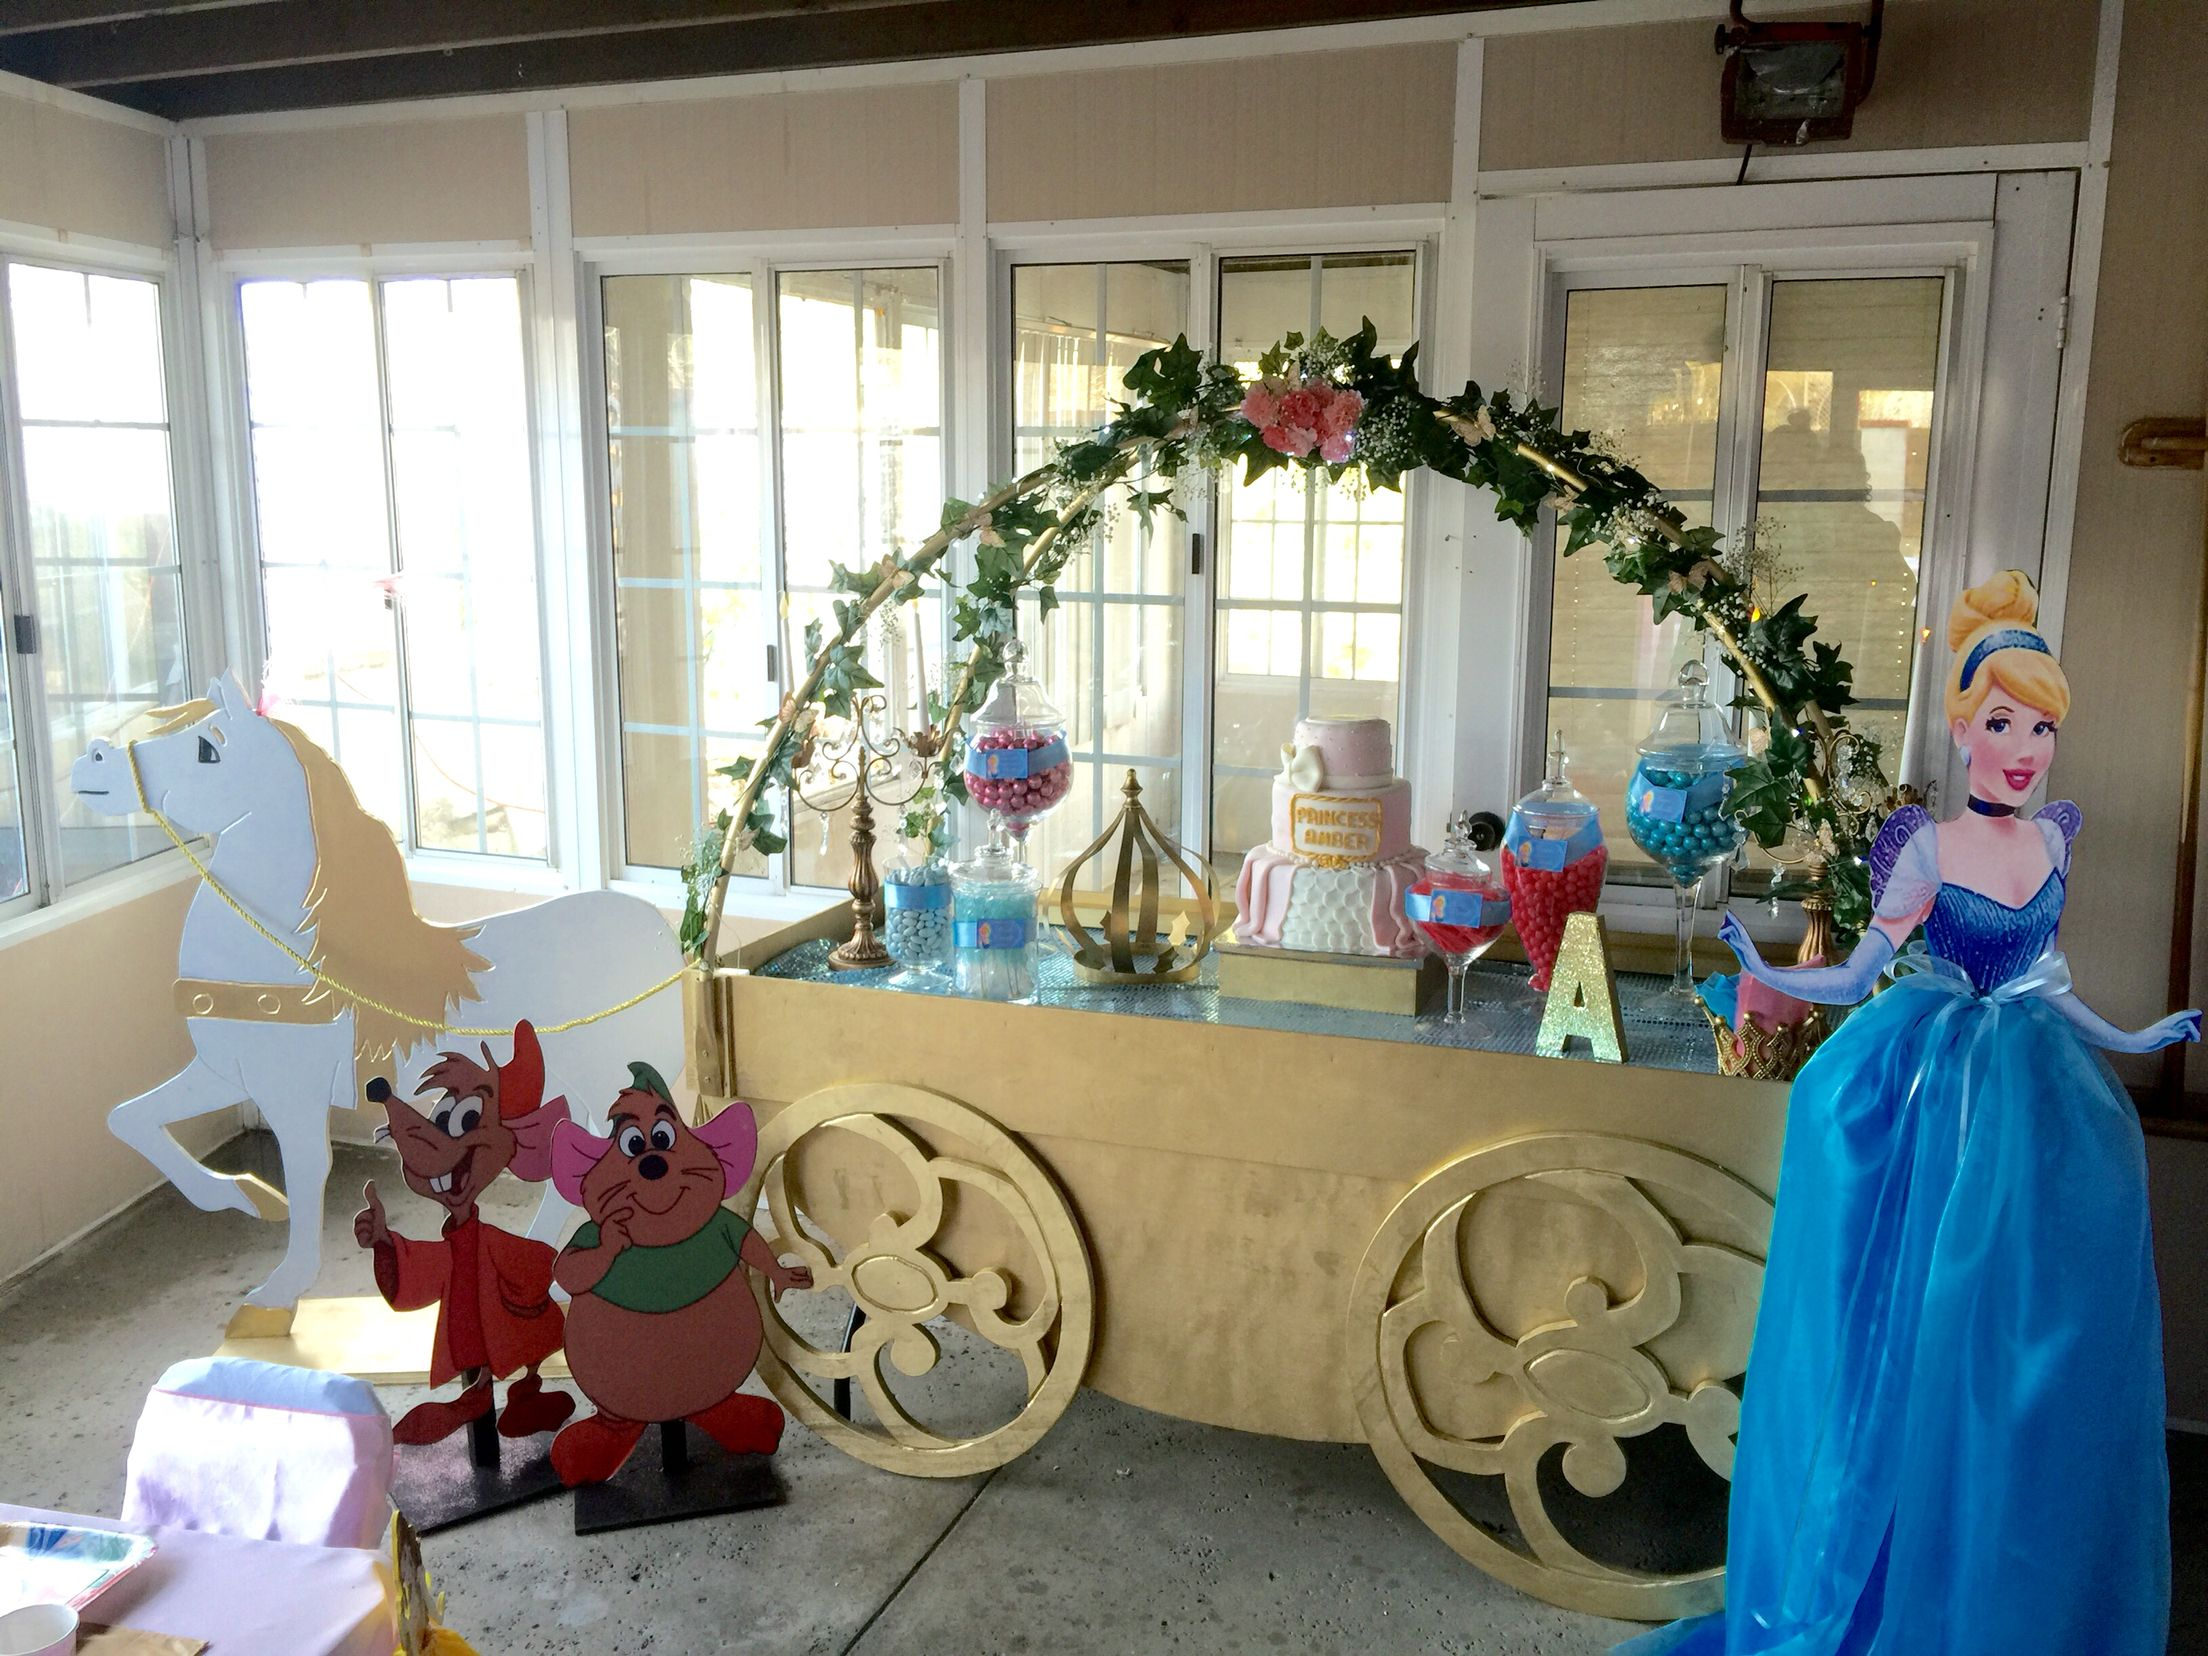 Cinderella Carriage Dessert Candy Table Decor Cutouts Design Party Kids Party Cinder Cinderella Birthday Party Cinderella Birthday Cinderella Party